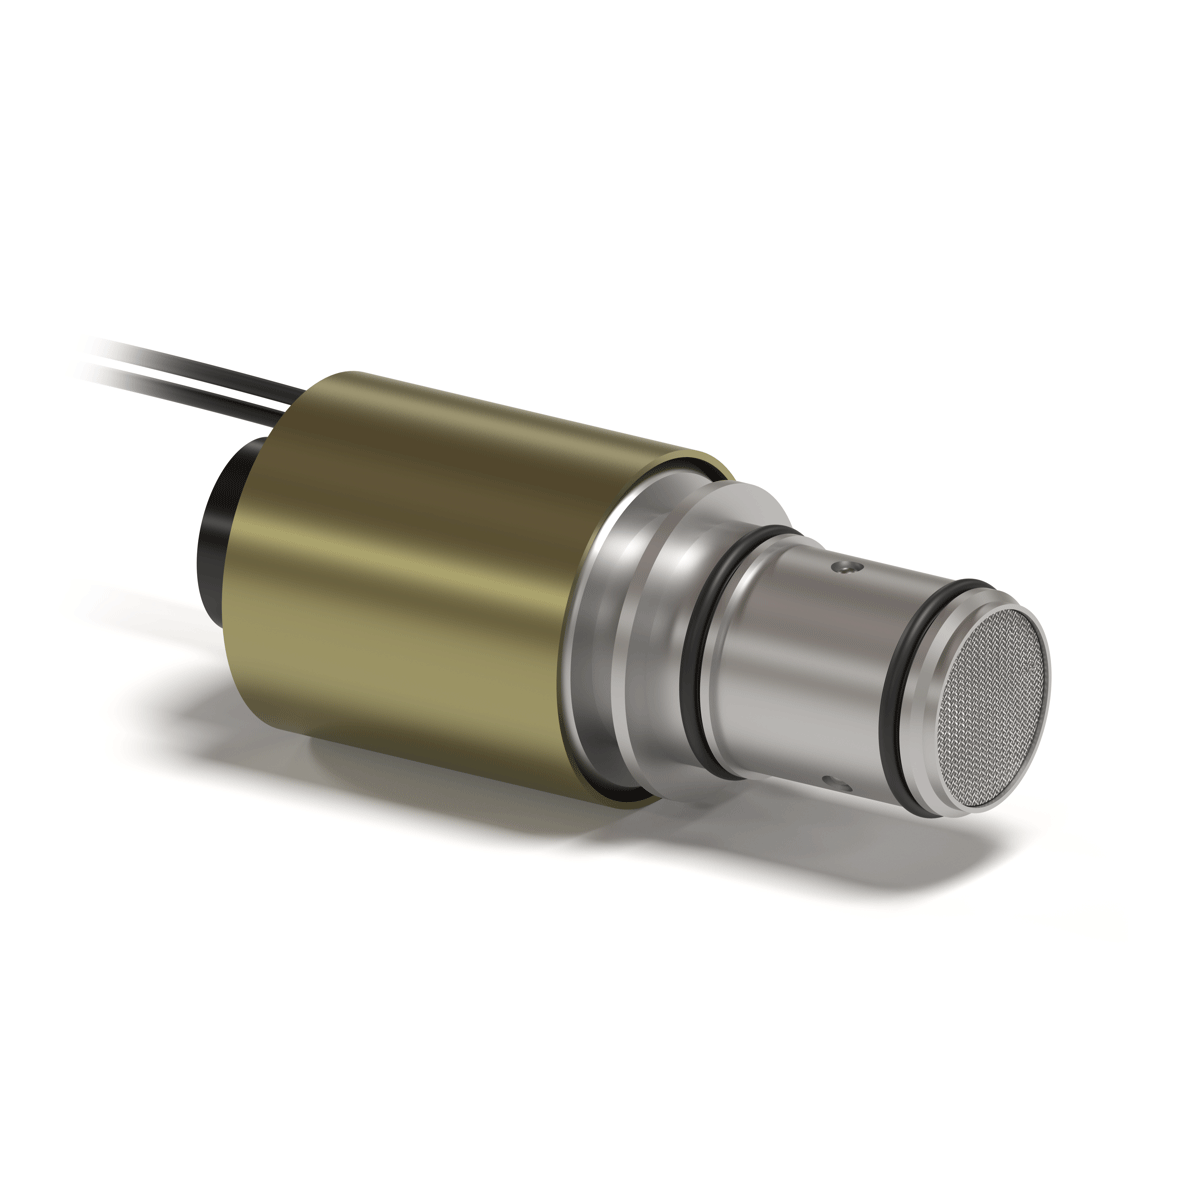 Three-Way Proportional Pressure Reducing-Relieving Valve